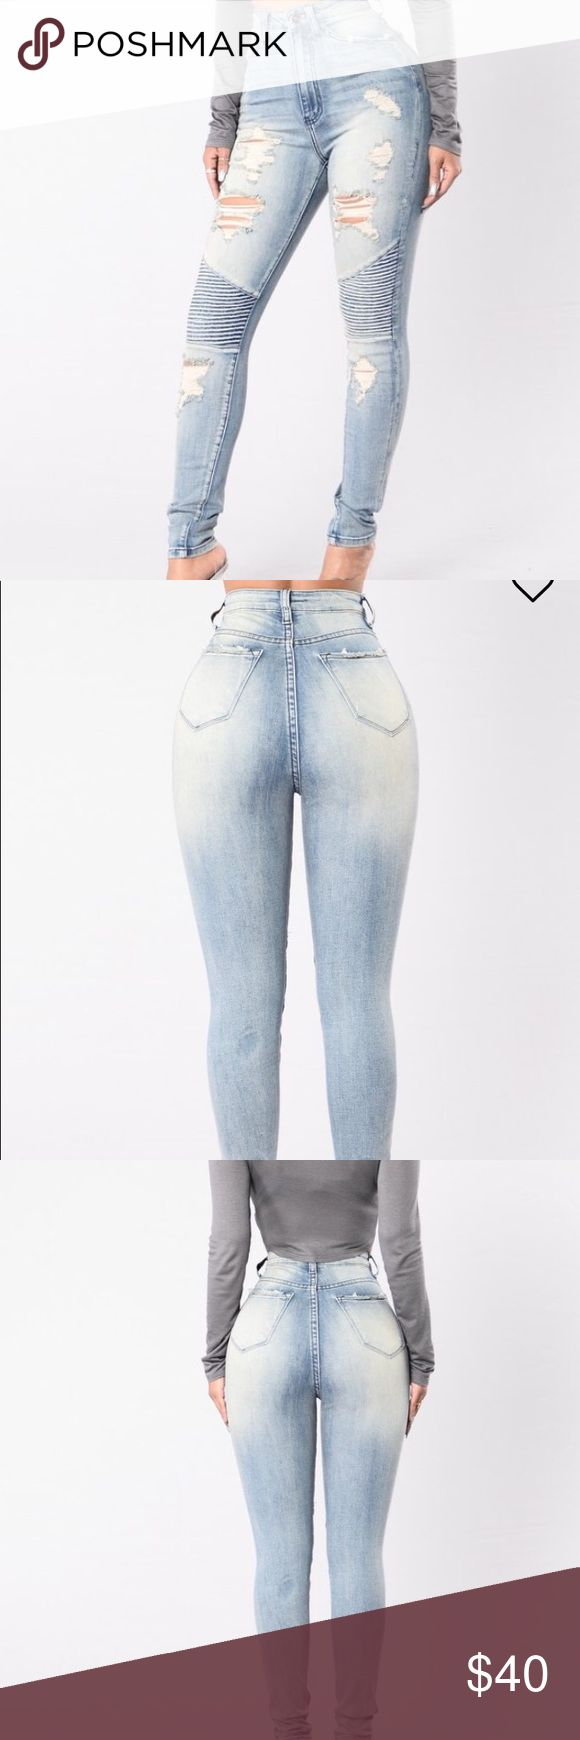 Stylish distress jeans Distressed Moto high rise, skinny legged jeans. Soft denim with spandex. High waist is totally flattering. Definitely won't be disappointed Jeans Skinny